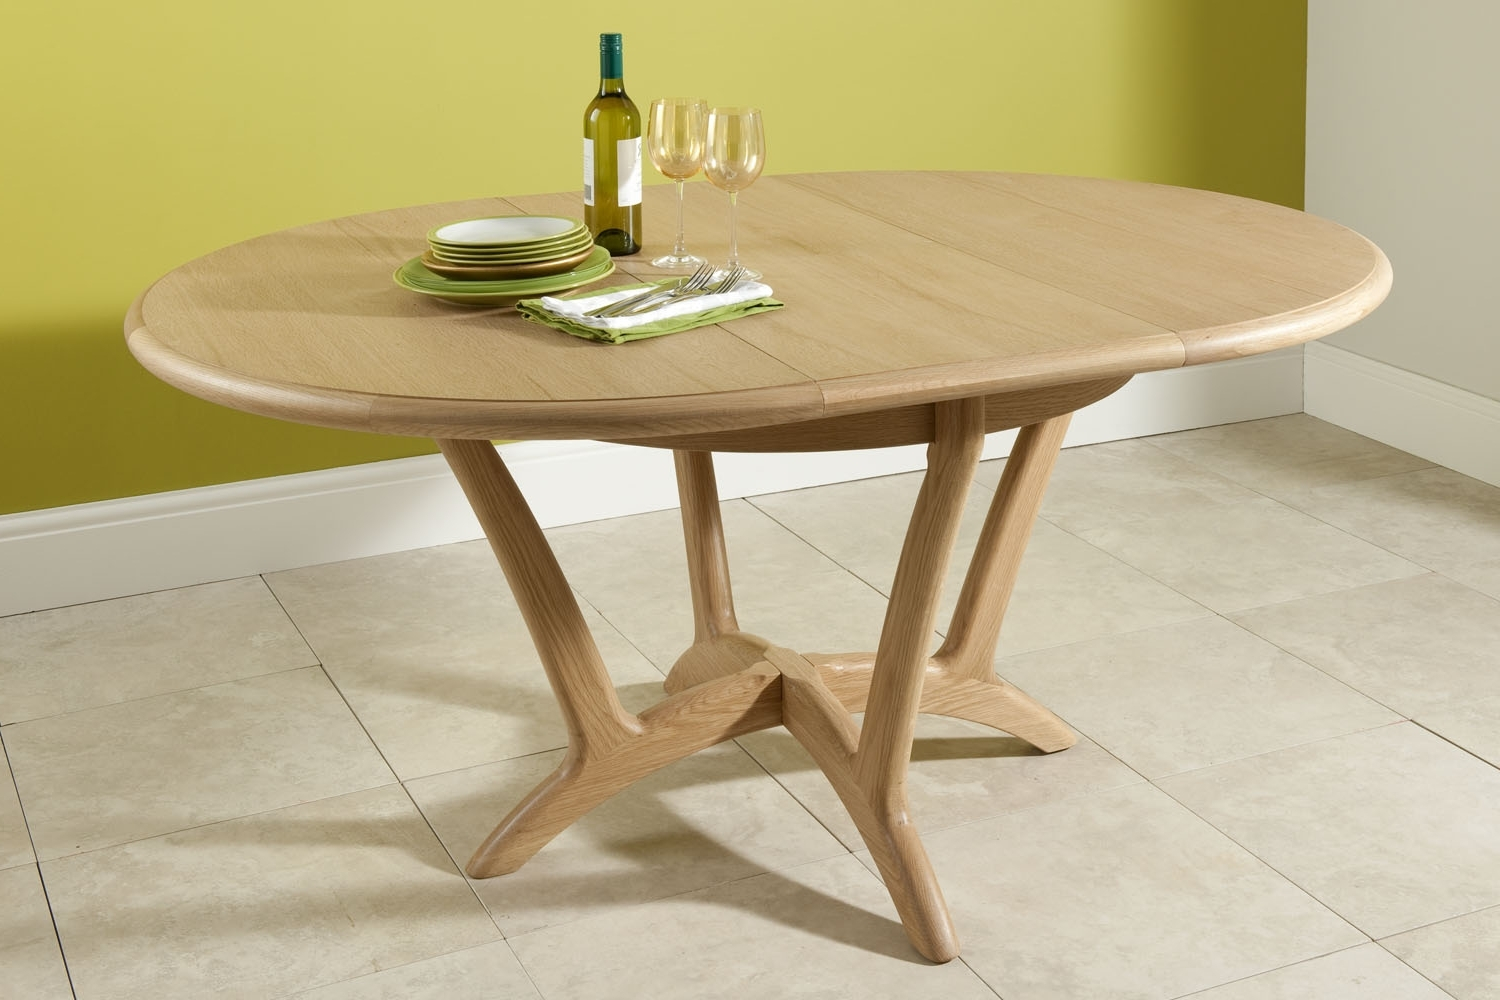 Extending Round Dining Tables Intended For Recent Shetland Round Extending Dining Table Cardiff And Swansea (View 8 of 25)